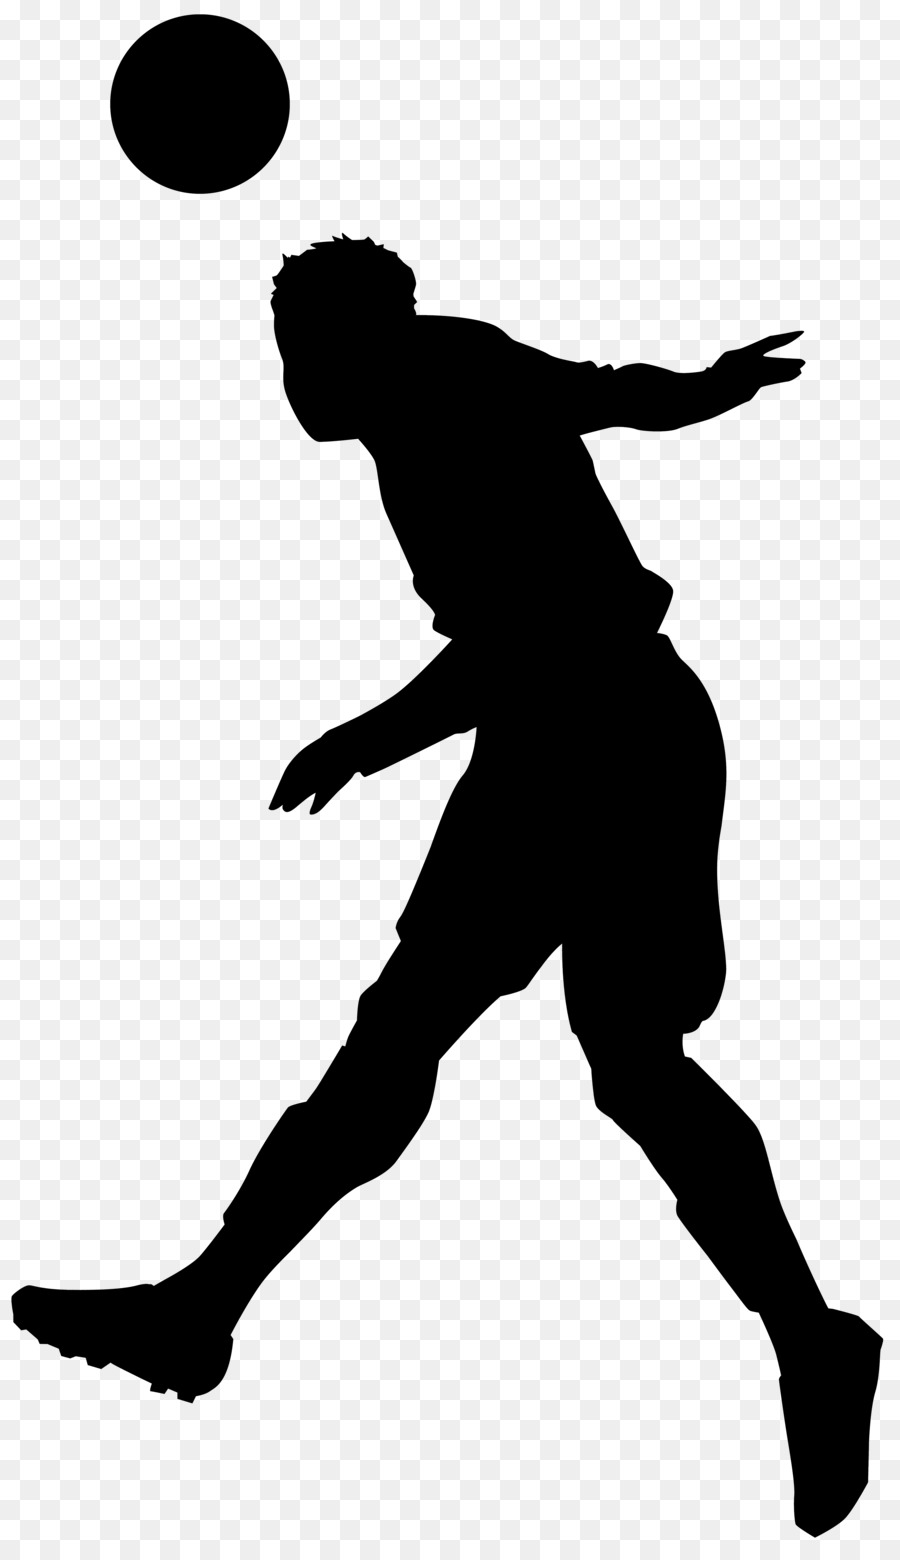 hight resolution of football player silhouette clipart football player american football clip art